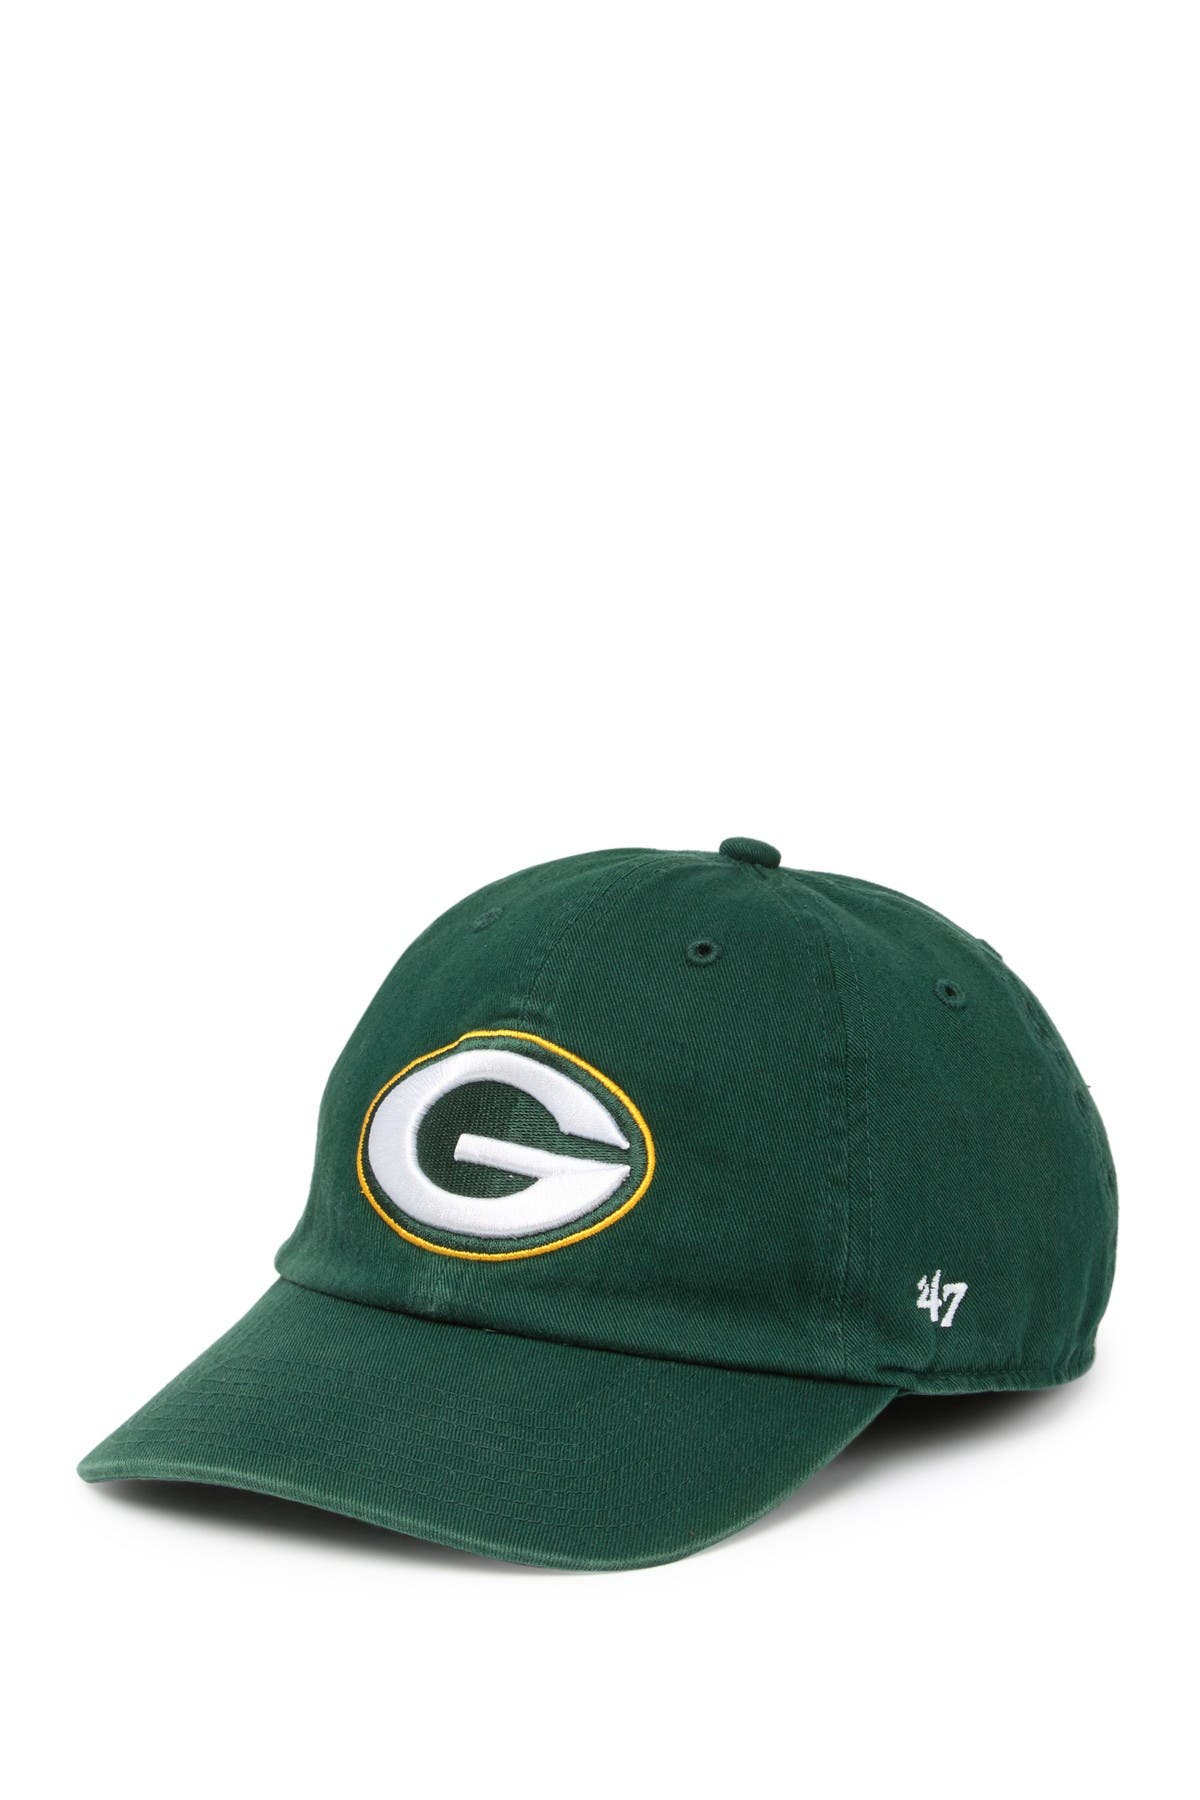 Image of 47 Brand NFL Green Bay Packers Older Cap